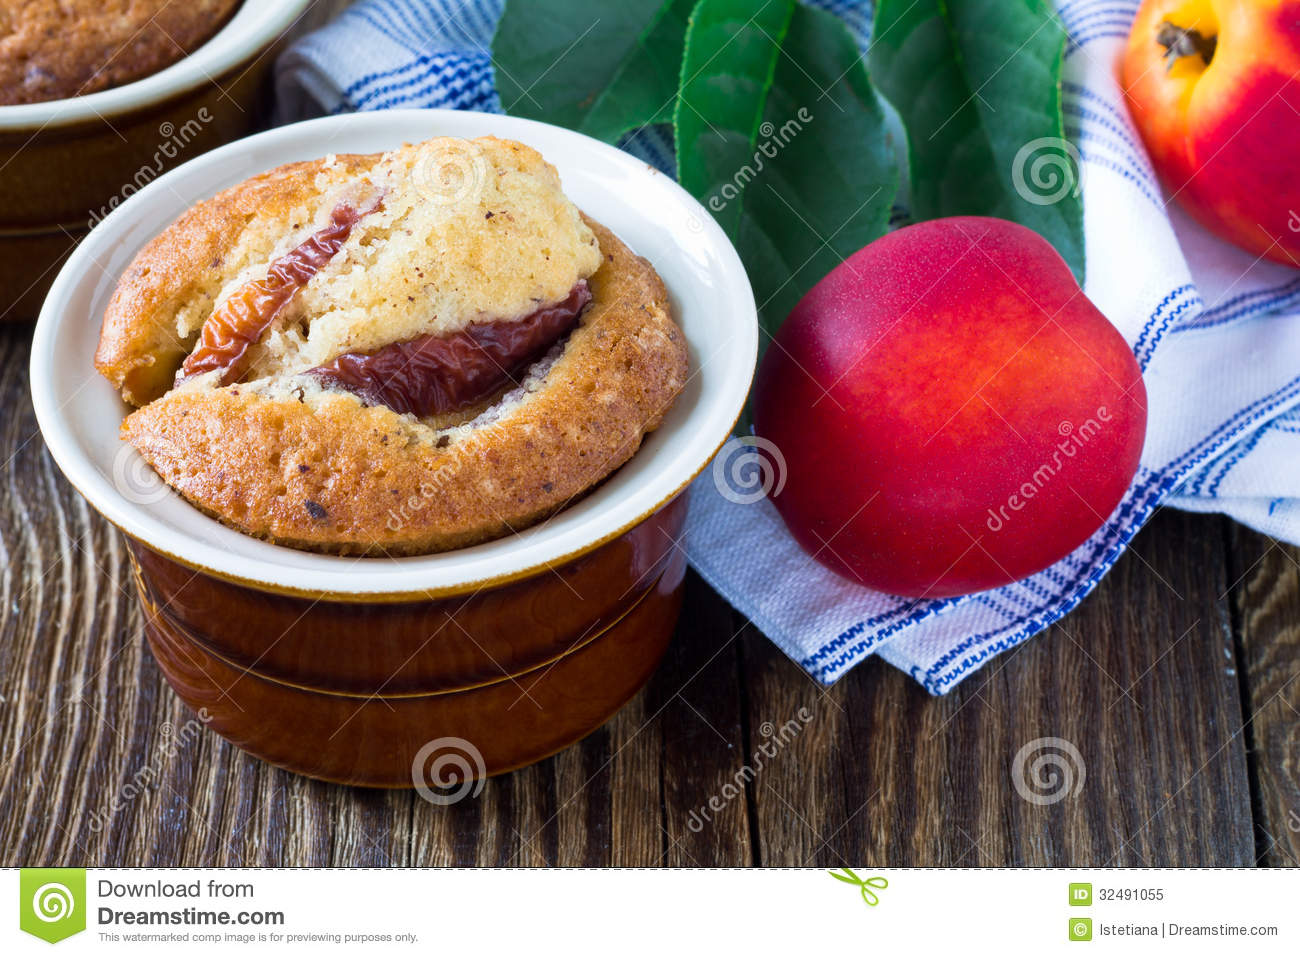 Homemade peach cake in a ramekin